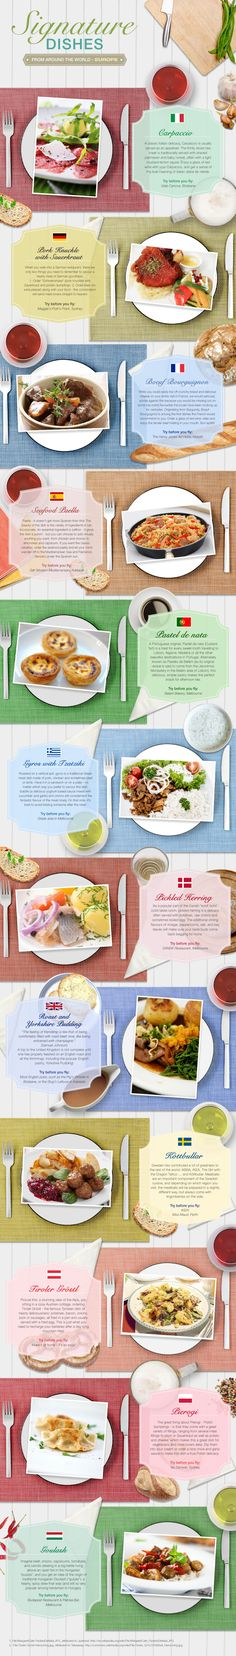 Signature Dishes from Around the World - Europe Infographic